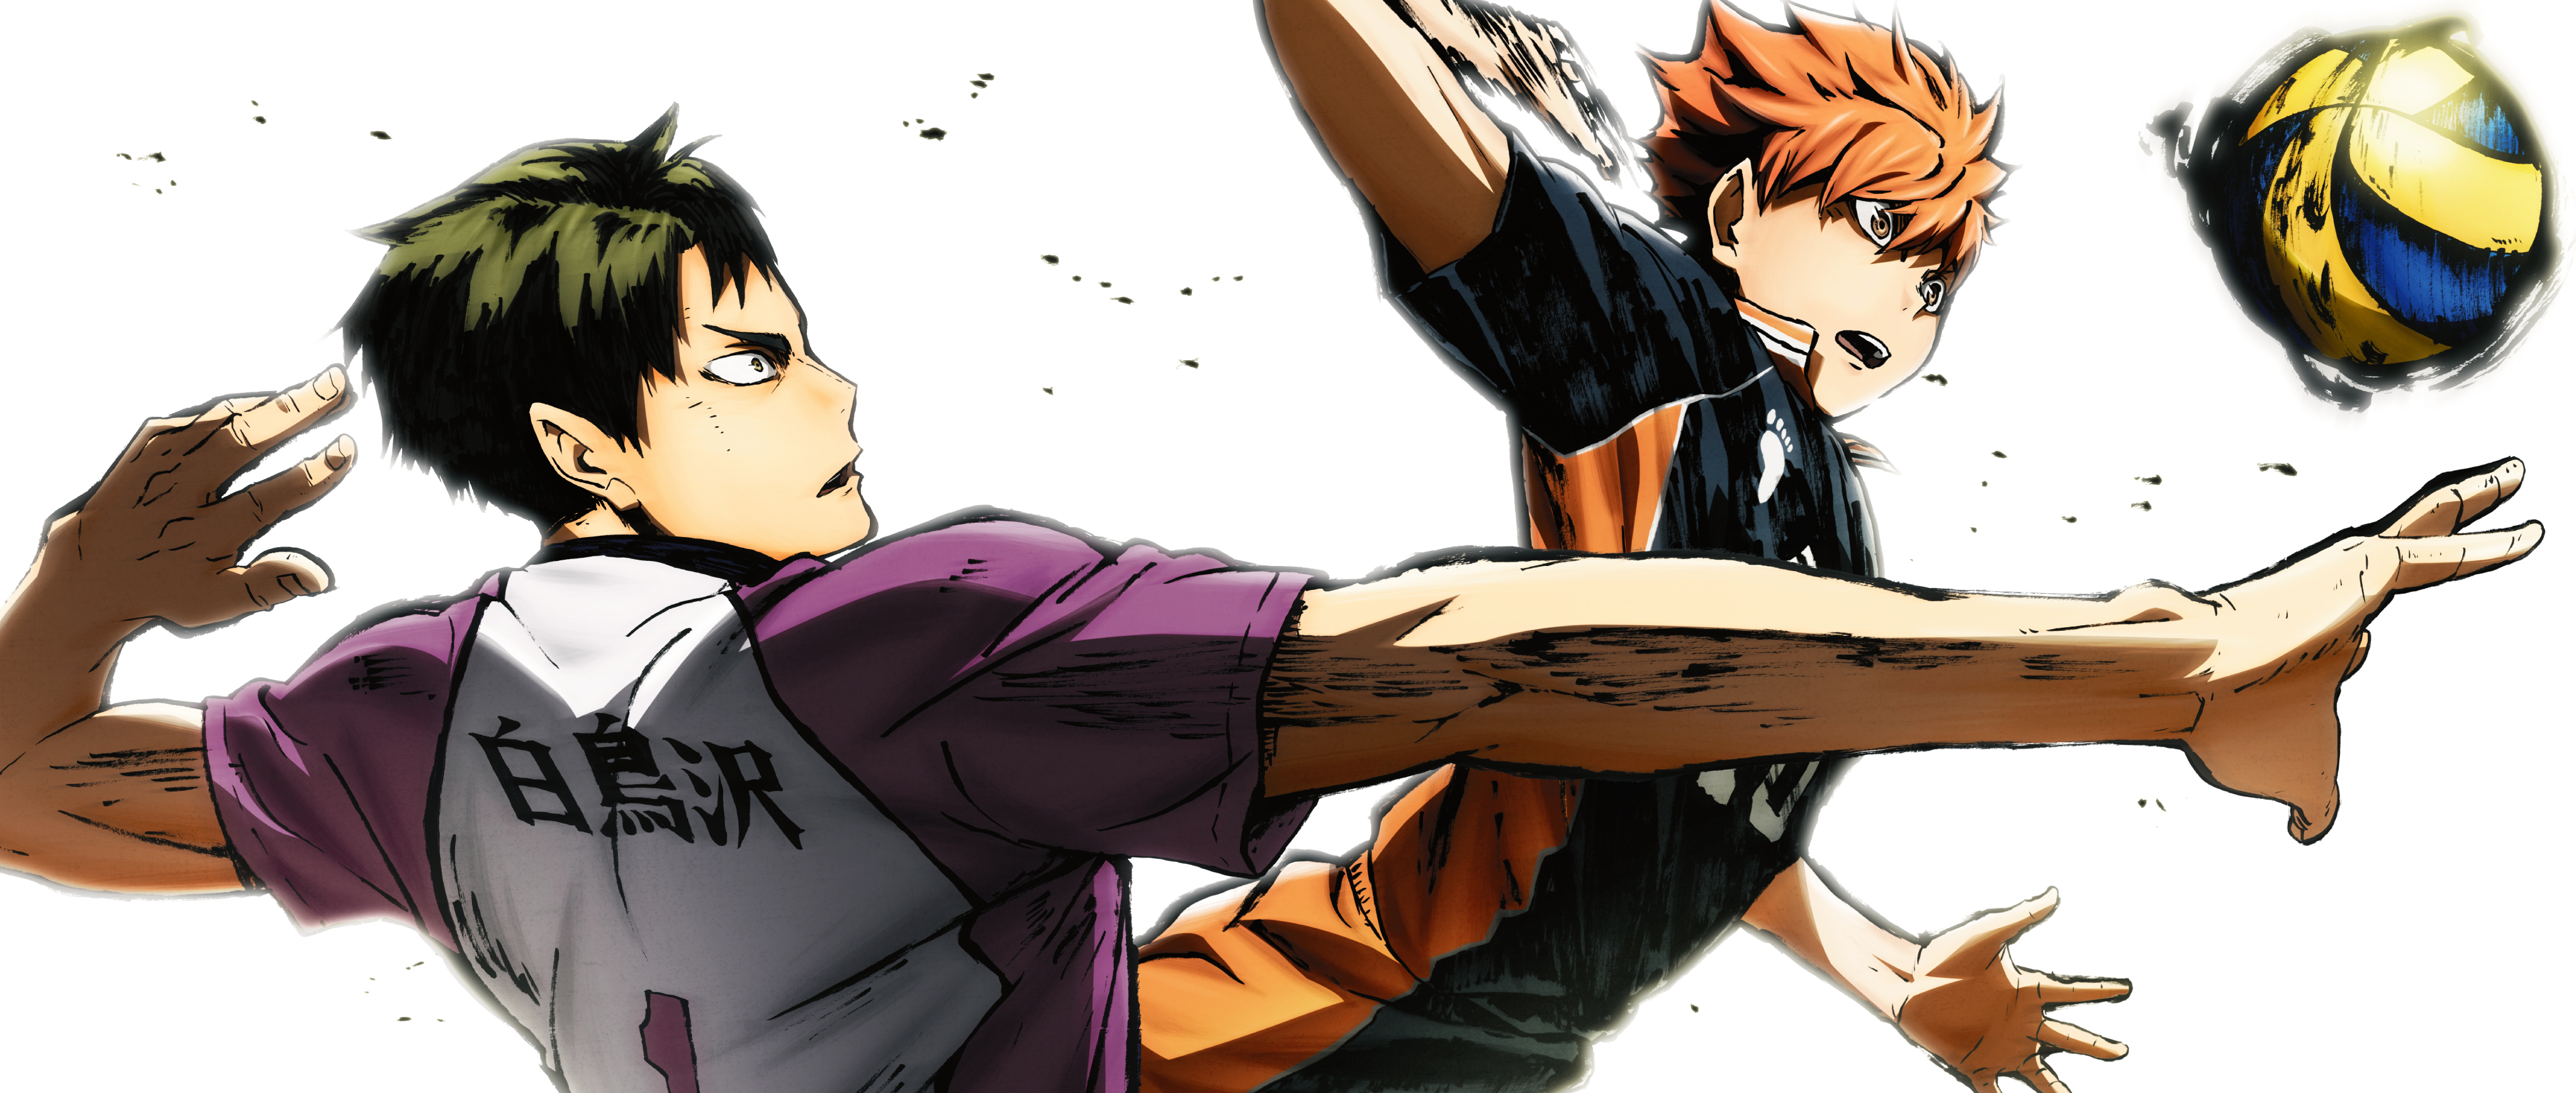 221 Haikyu HD Wallpapers